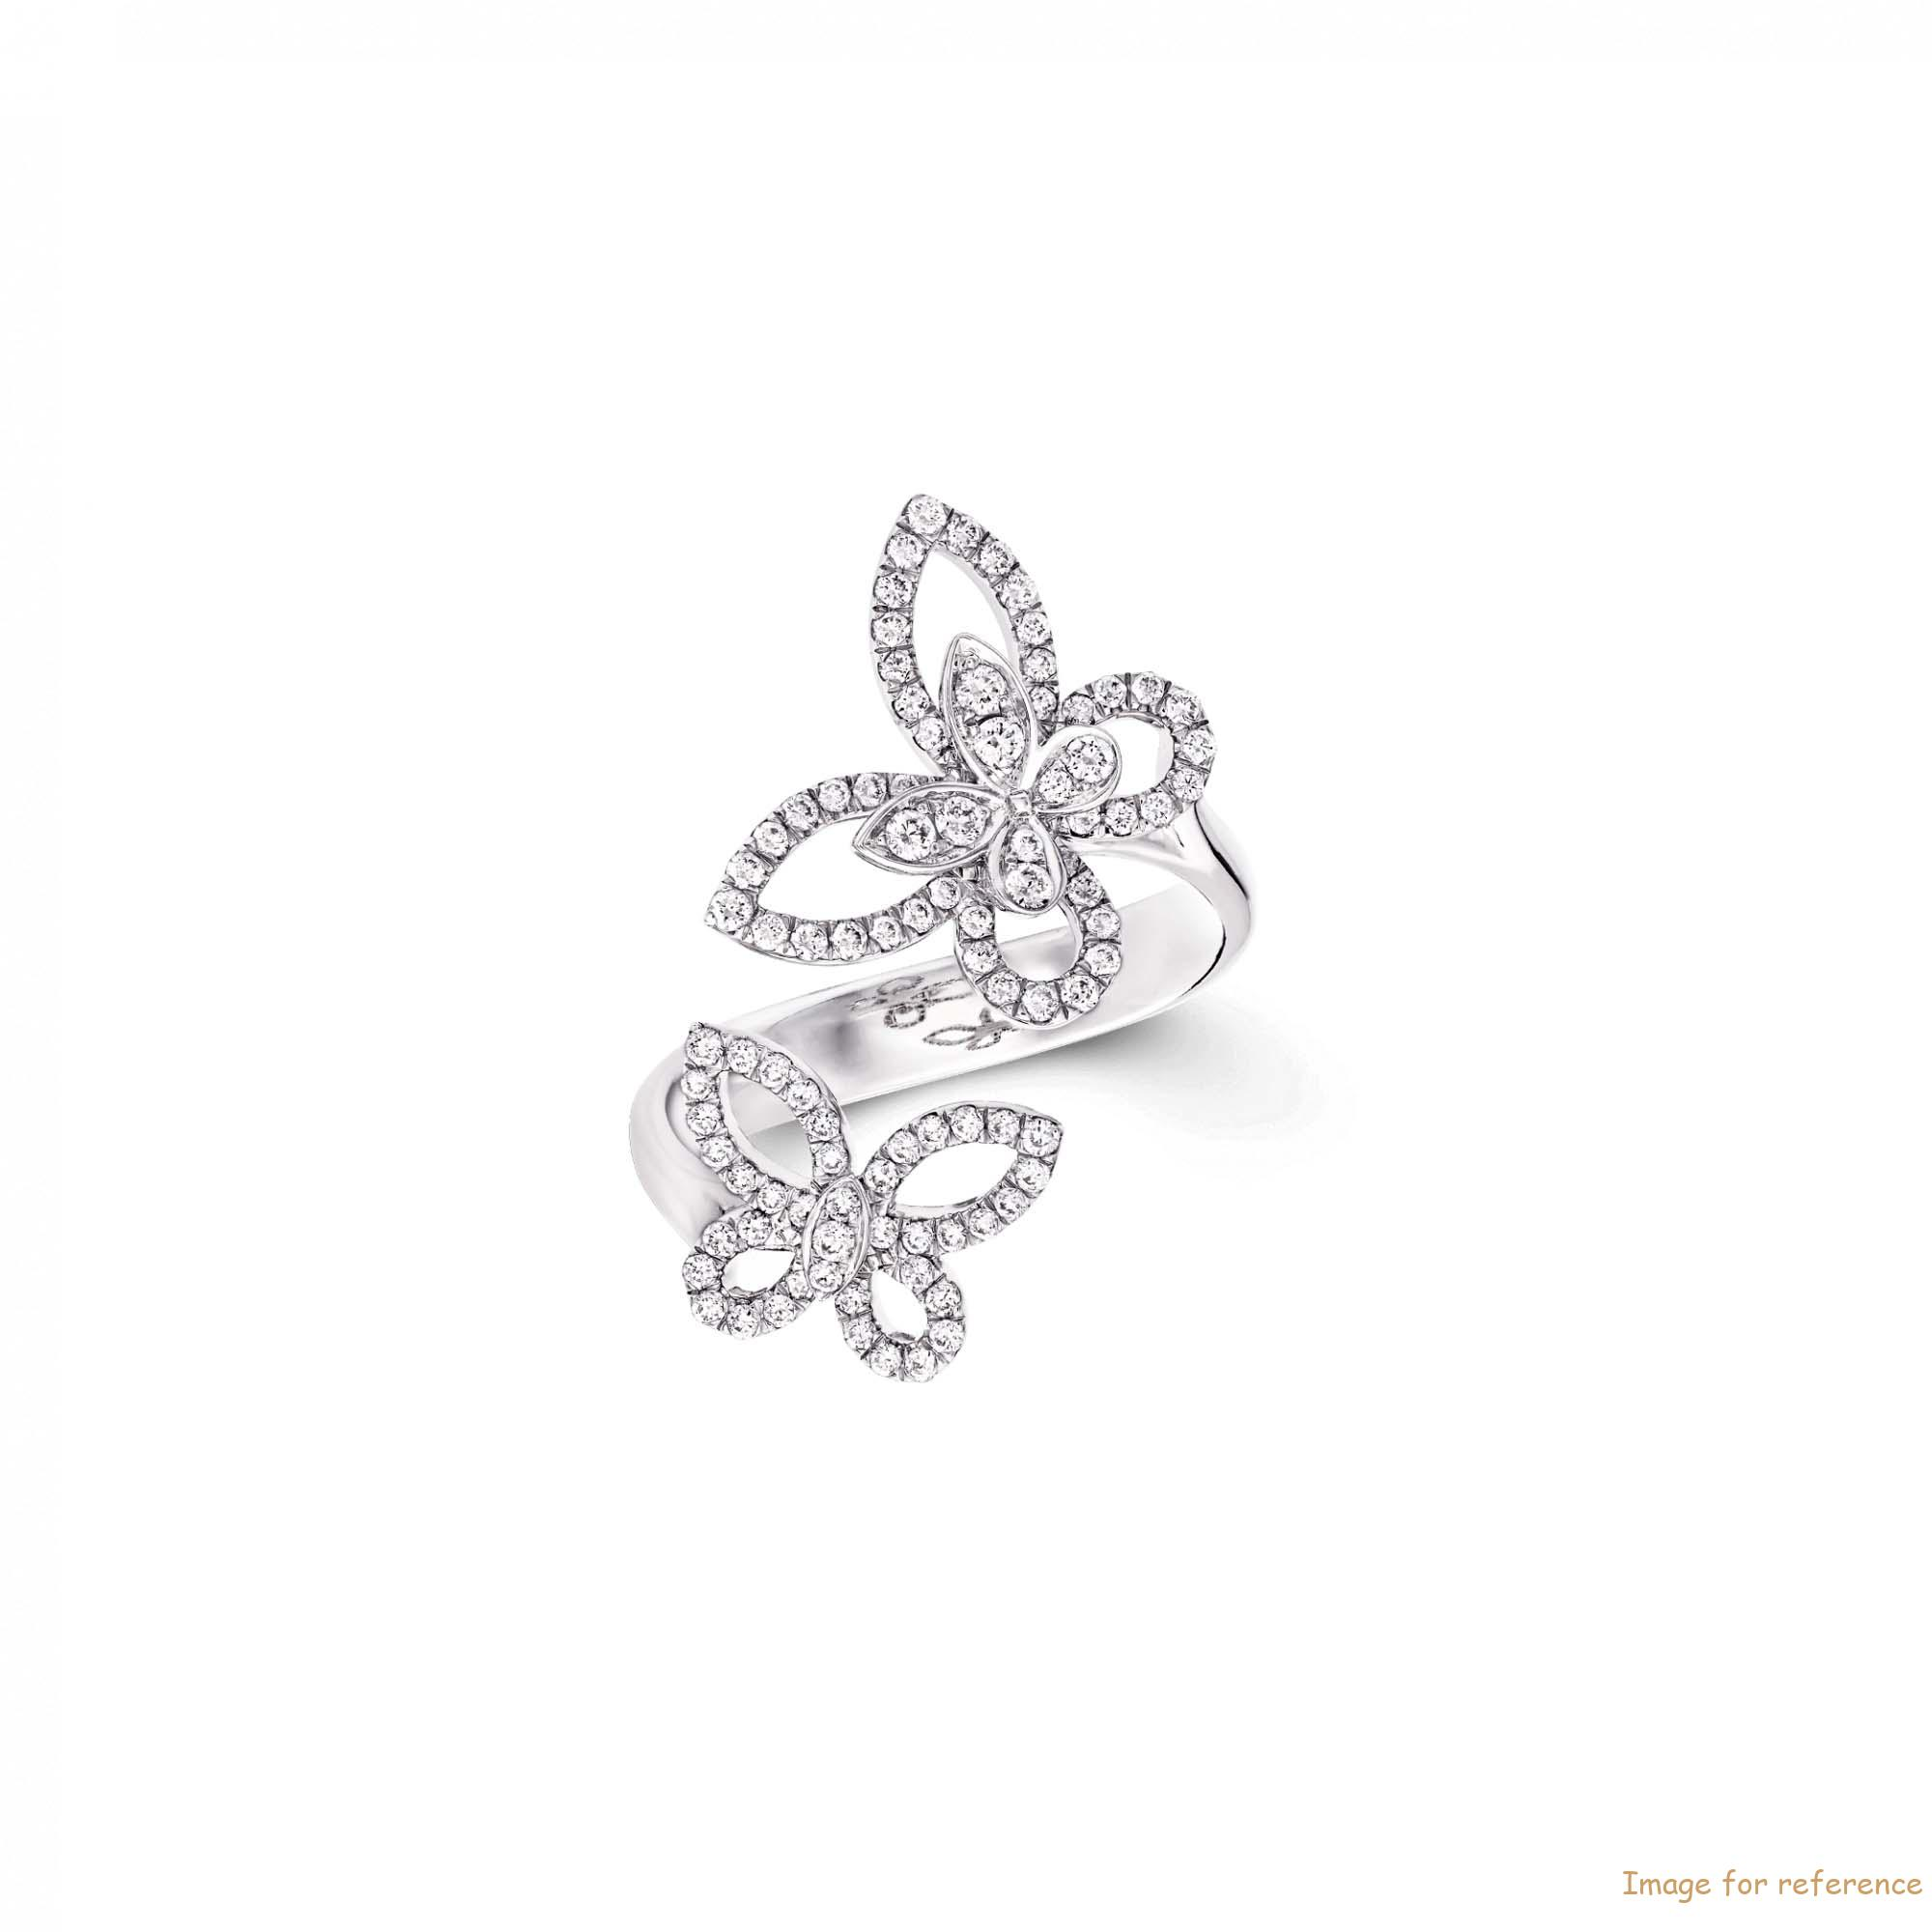 Open ring 925 Sterling Silver Jewelry Manufacturer OEM